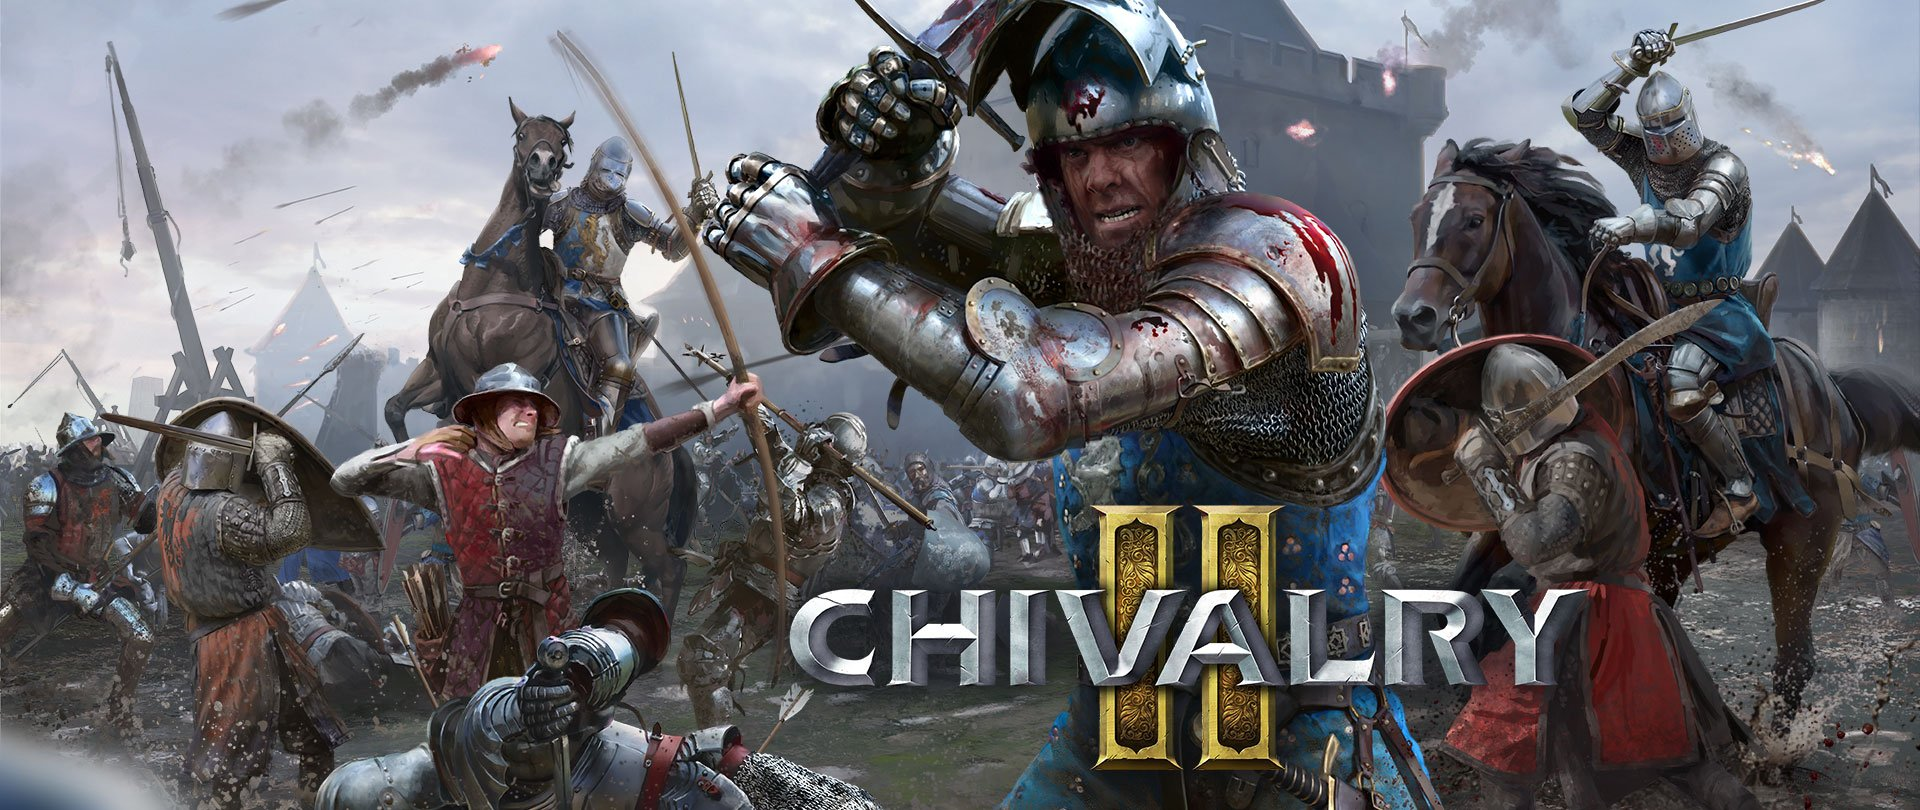 Can you play Chivalry 2 Offline